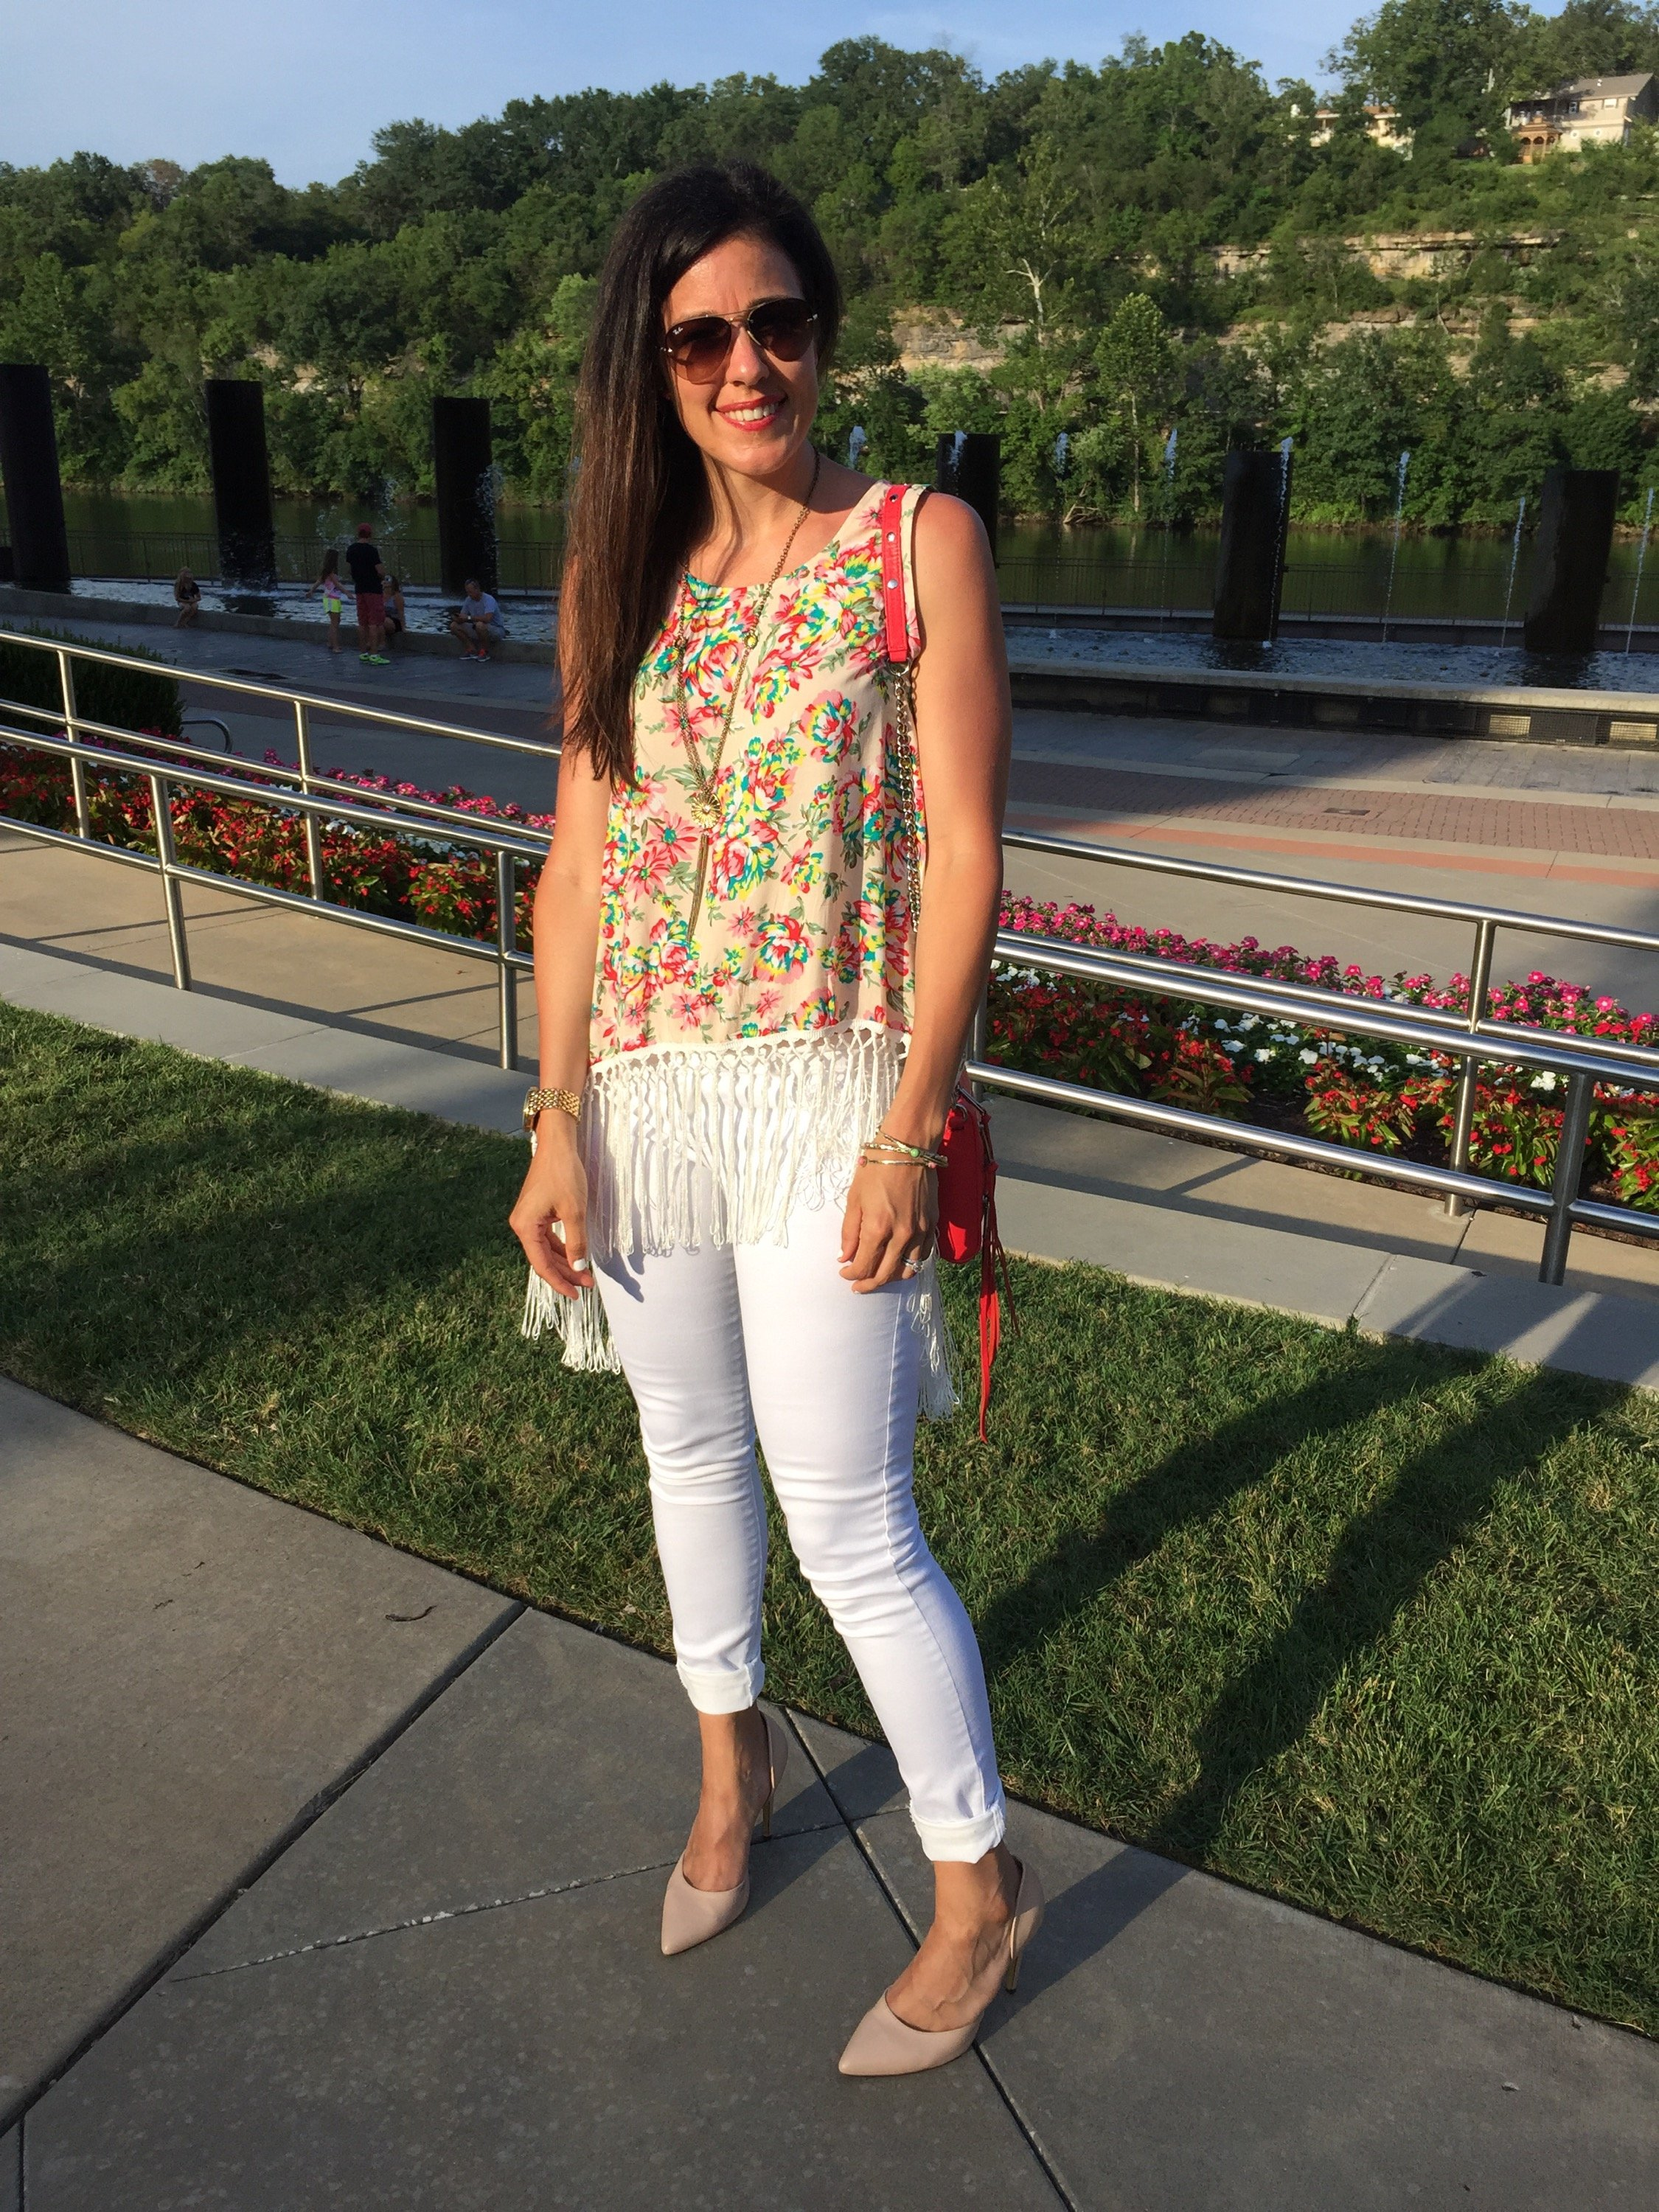 How to style floral top   white jeans outfit   spring and summer style   summer fashion tips   warm weather fashion   fringe top